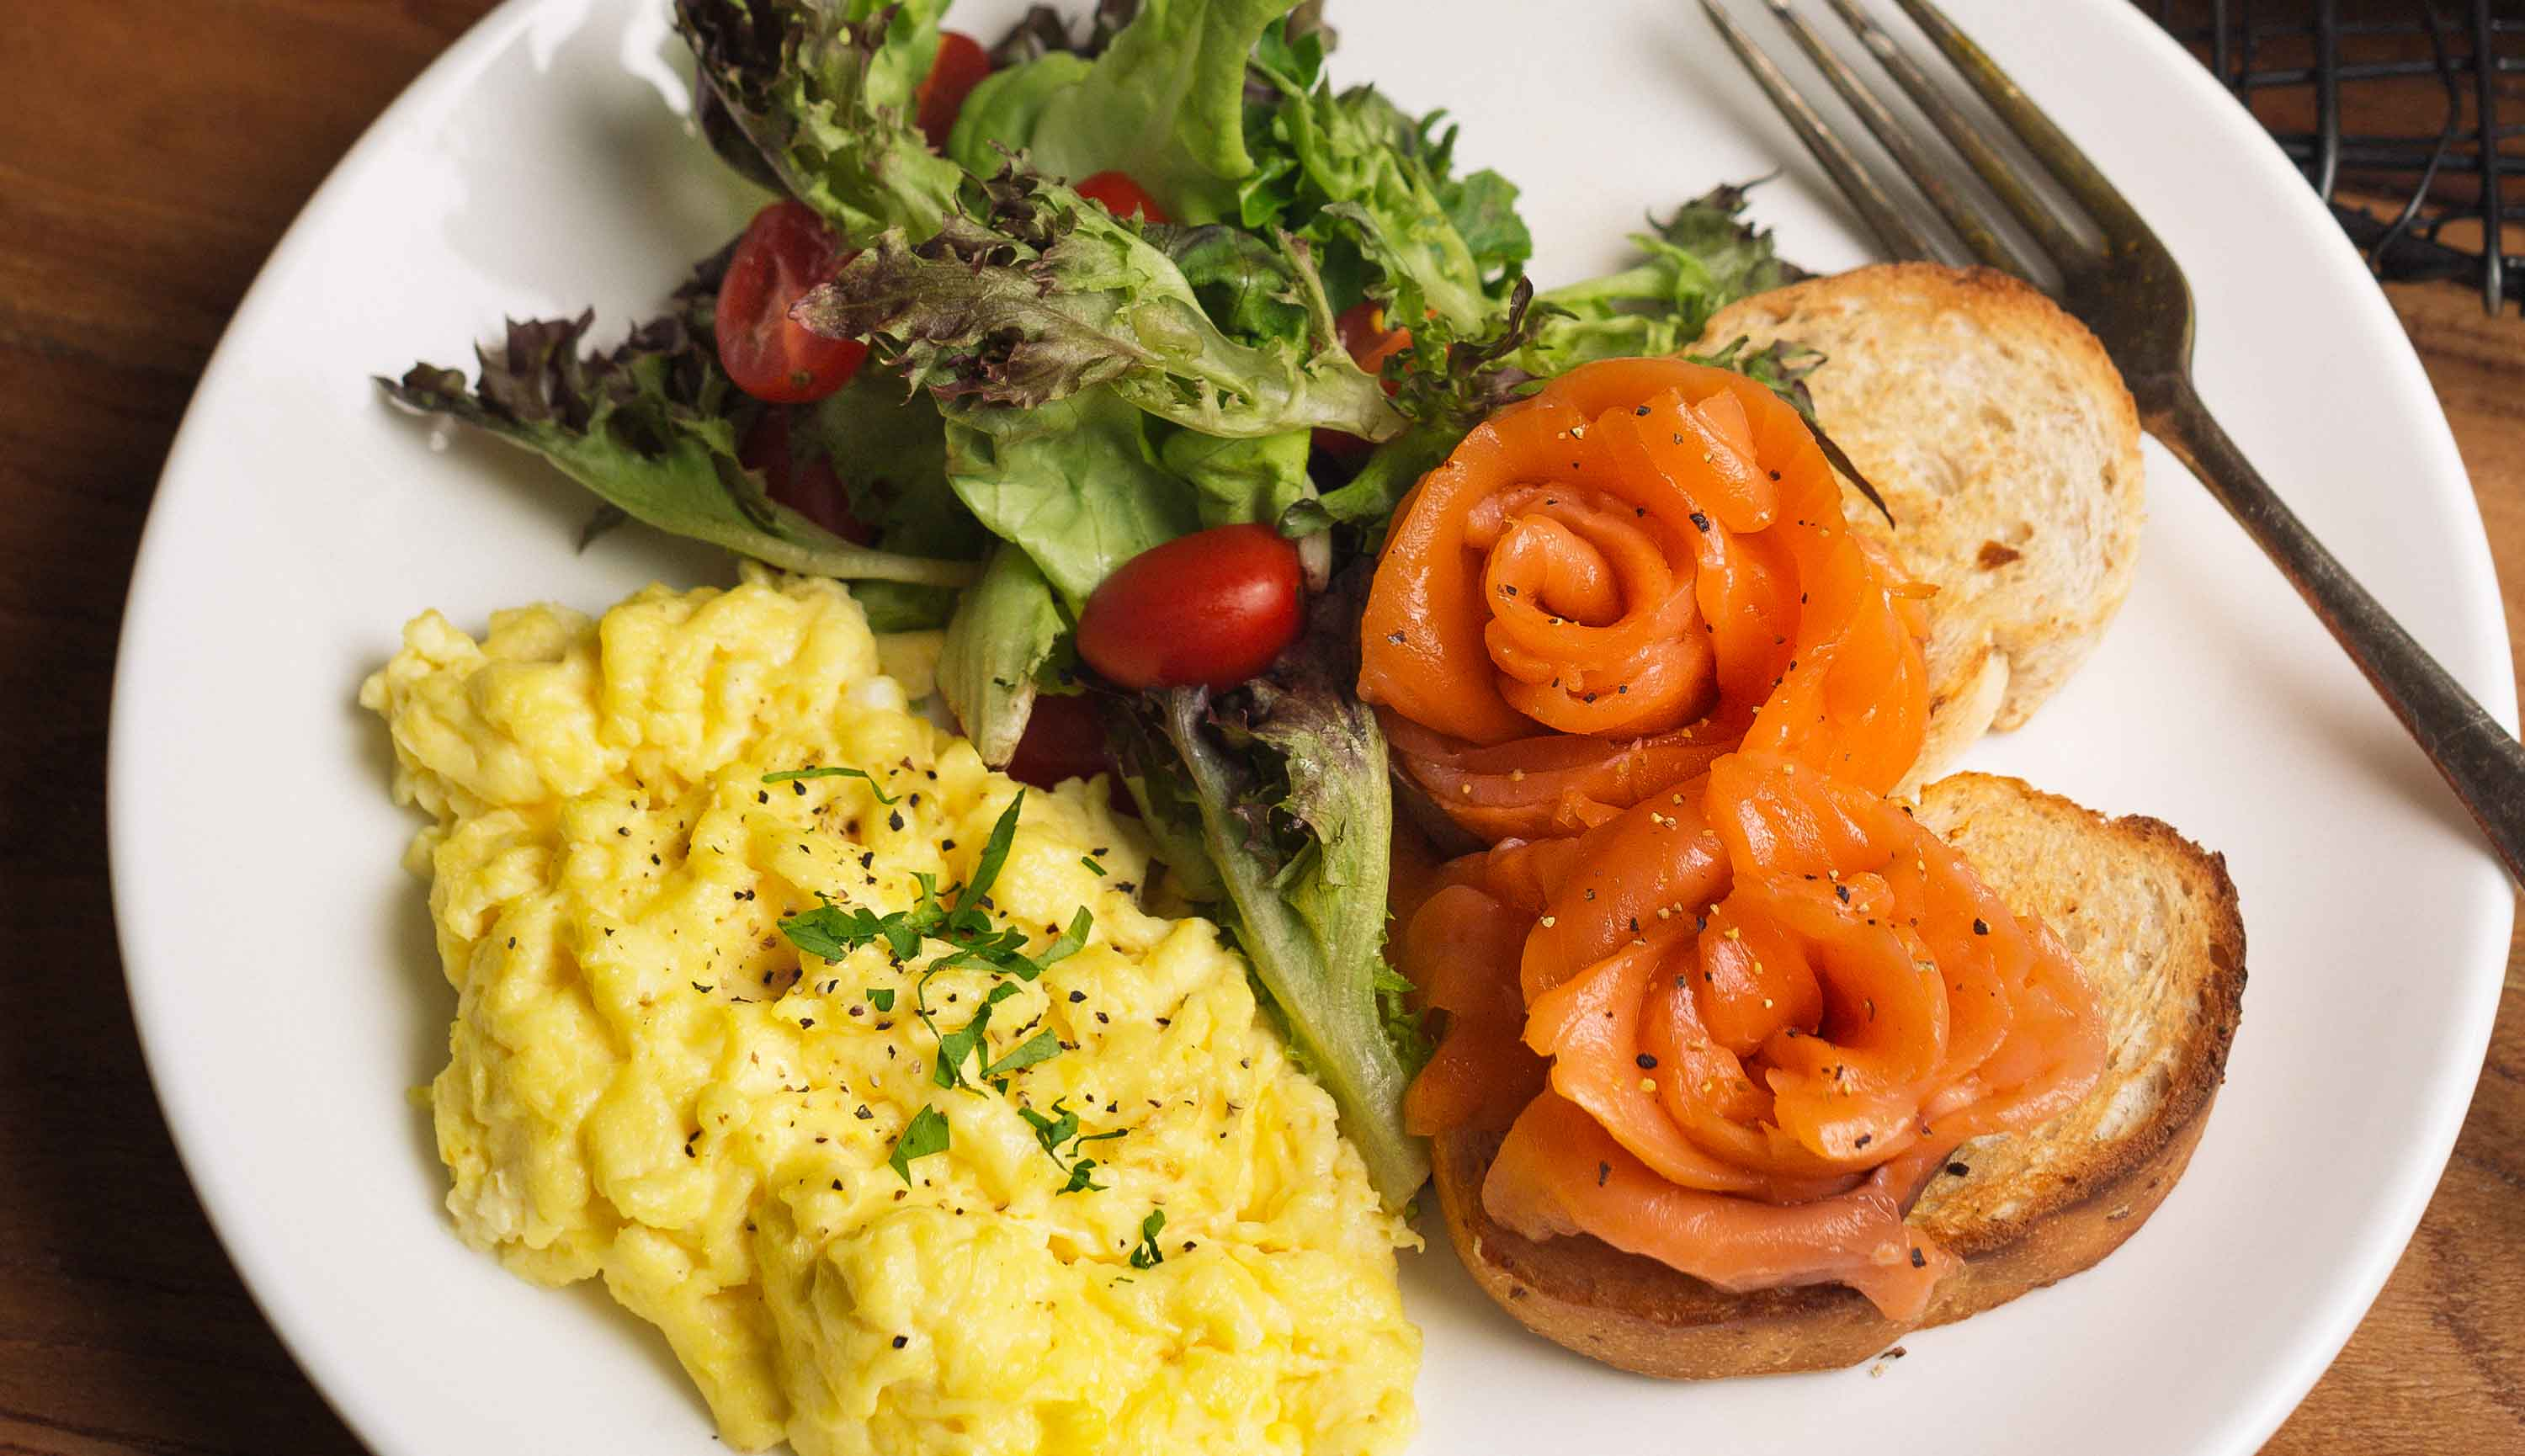 Hidangan Khas Dapaolo - Scramble Eggs with Smoked Salmon and Mesclun Salad